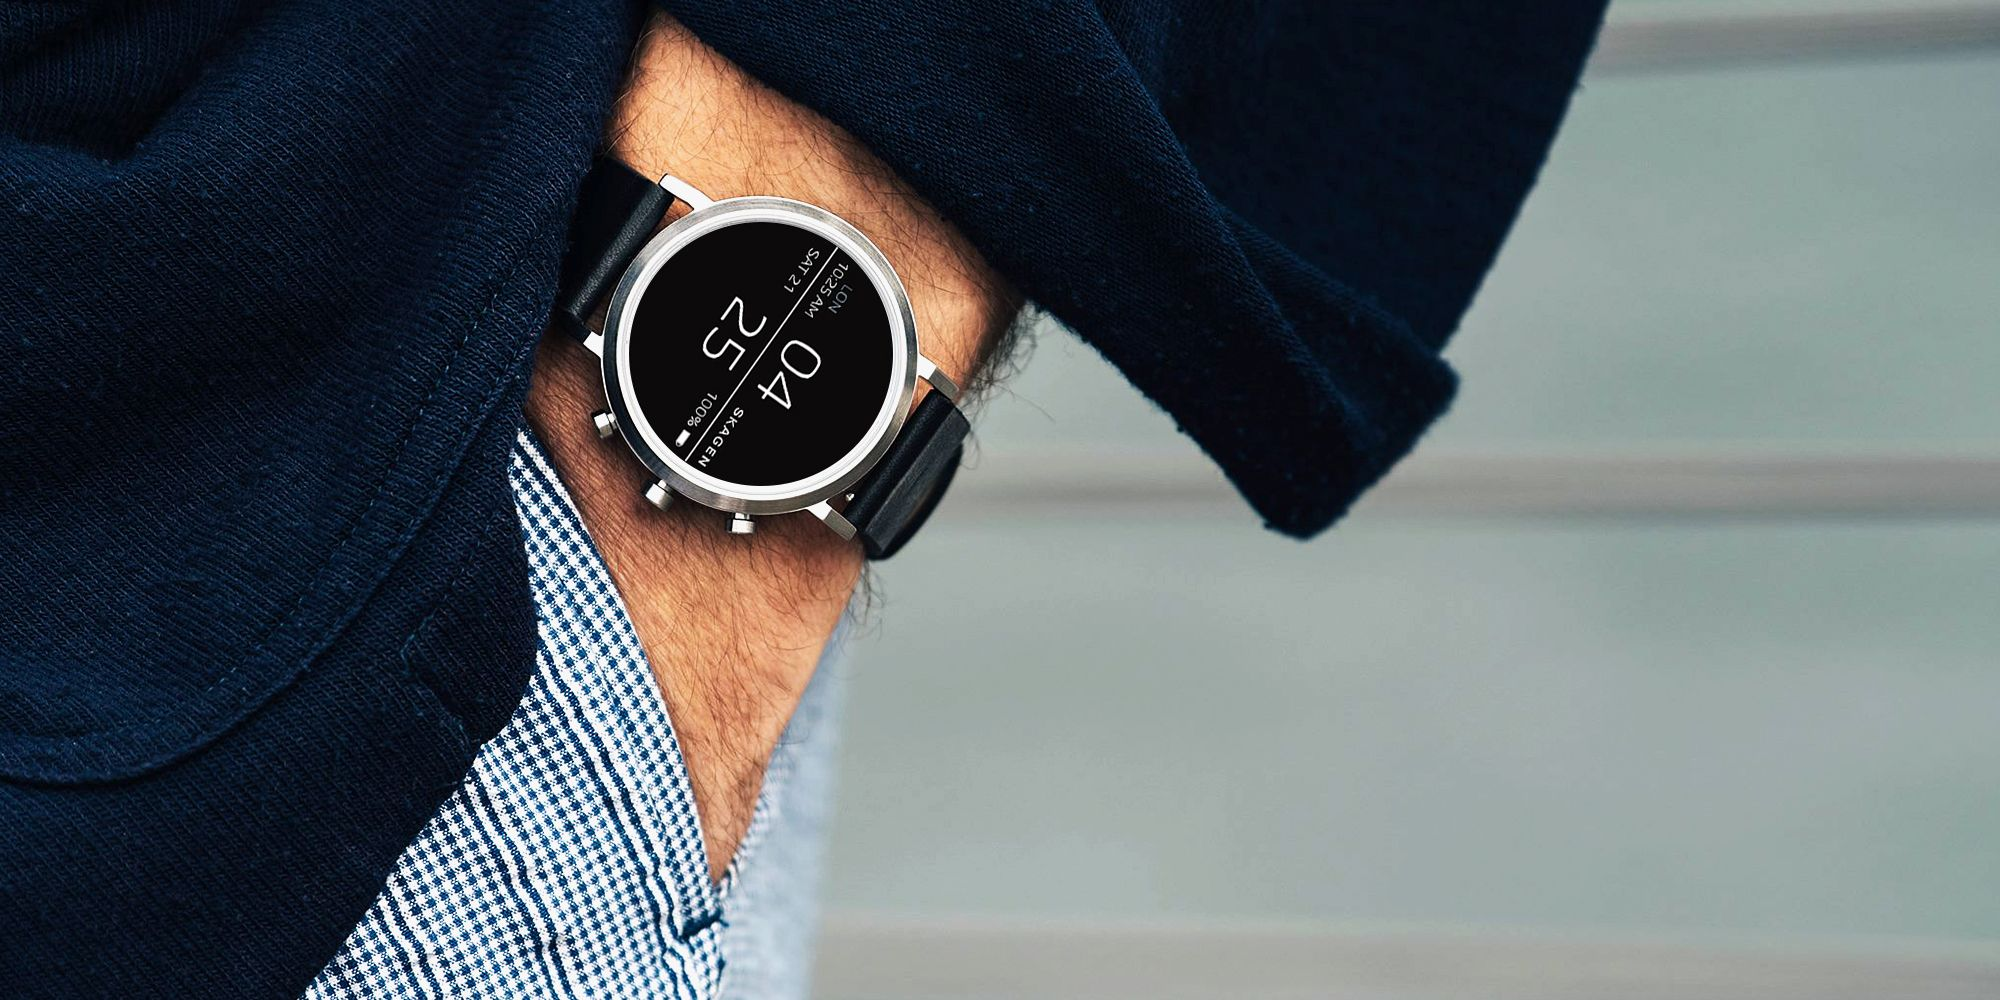 10 Best Android Wear Smartwatches for Every Lifestyle in 2019